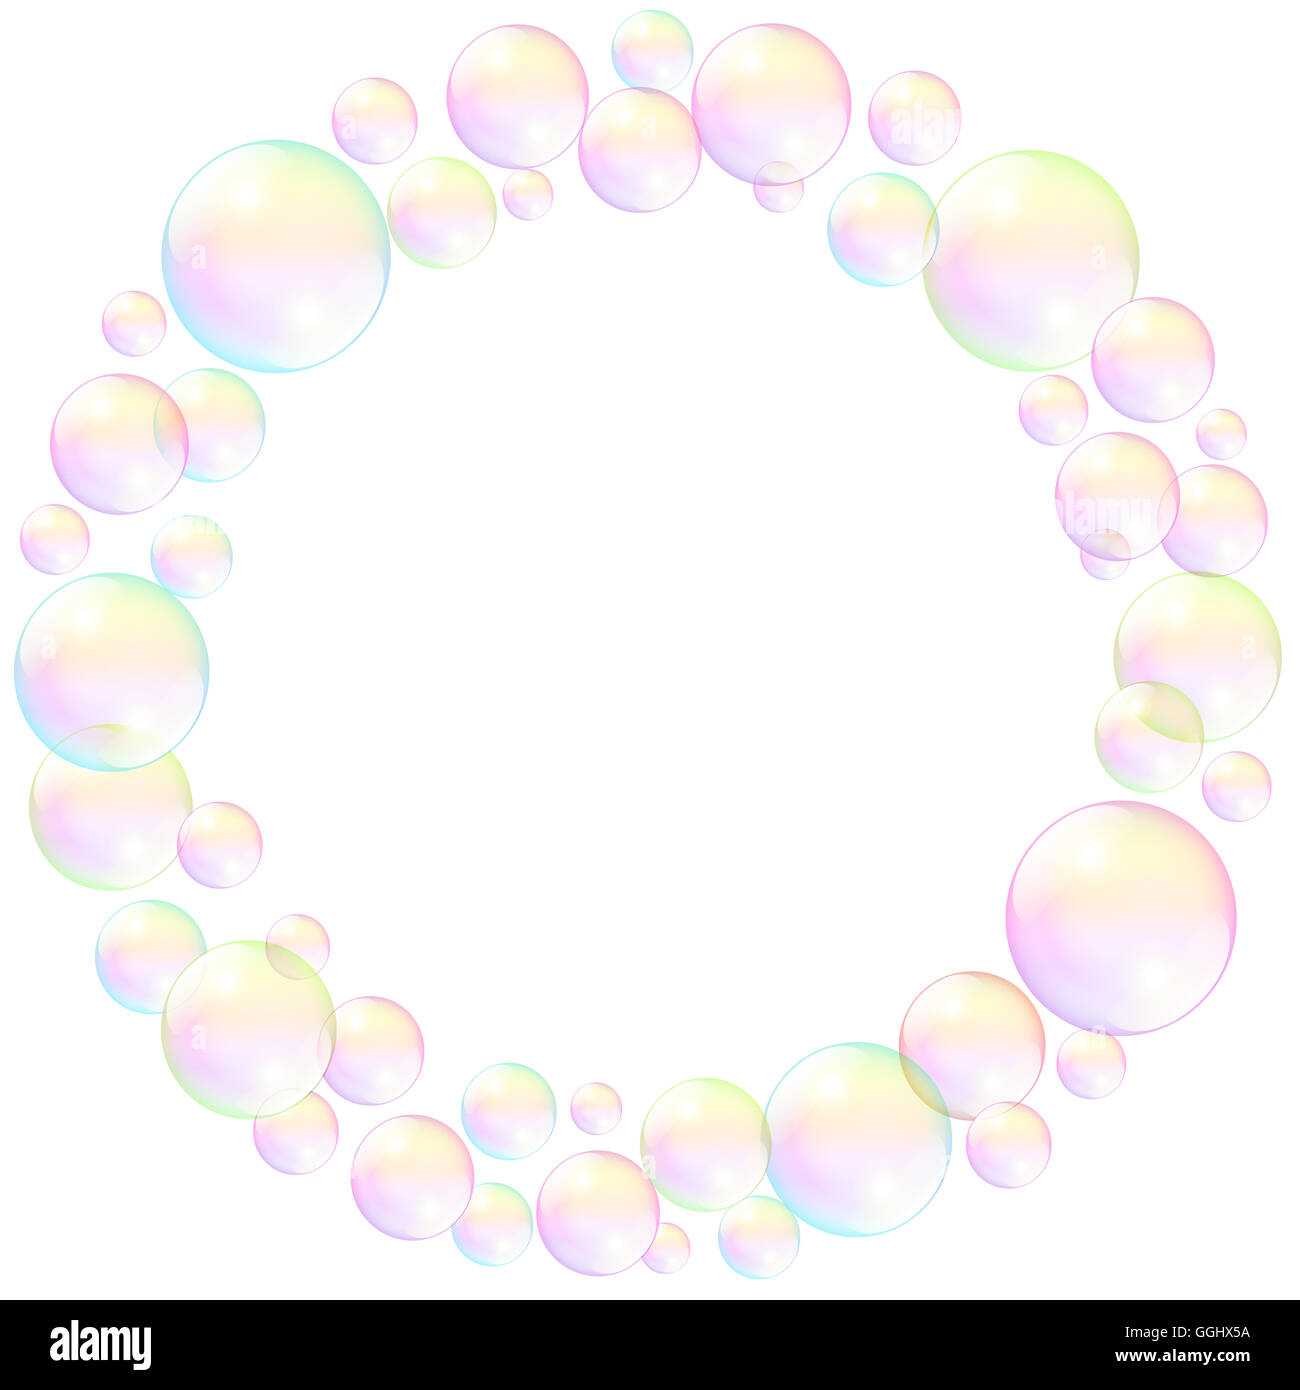 Soap bubbles, circular frame, realistic three-dimensional illustration. - Stock Image